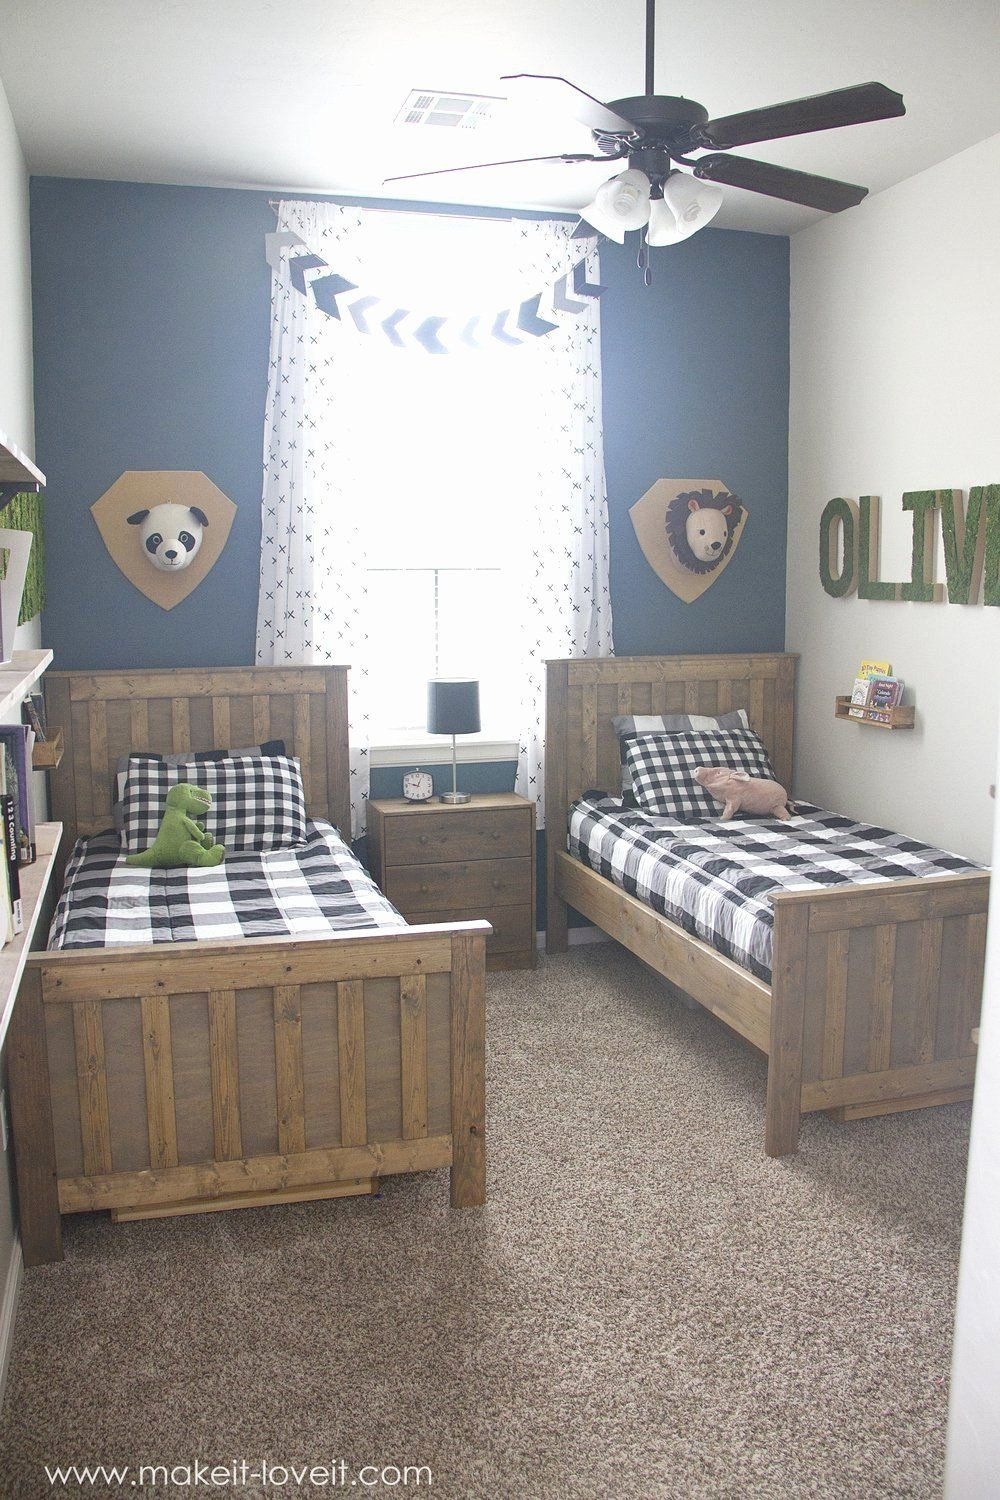 8 Year Old Boys Bedroom New Ideas for A D Boys Bedroom ...